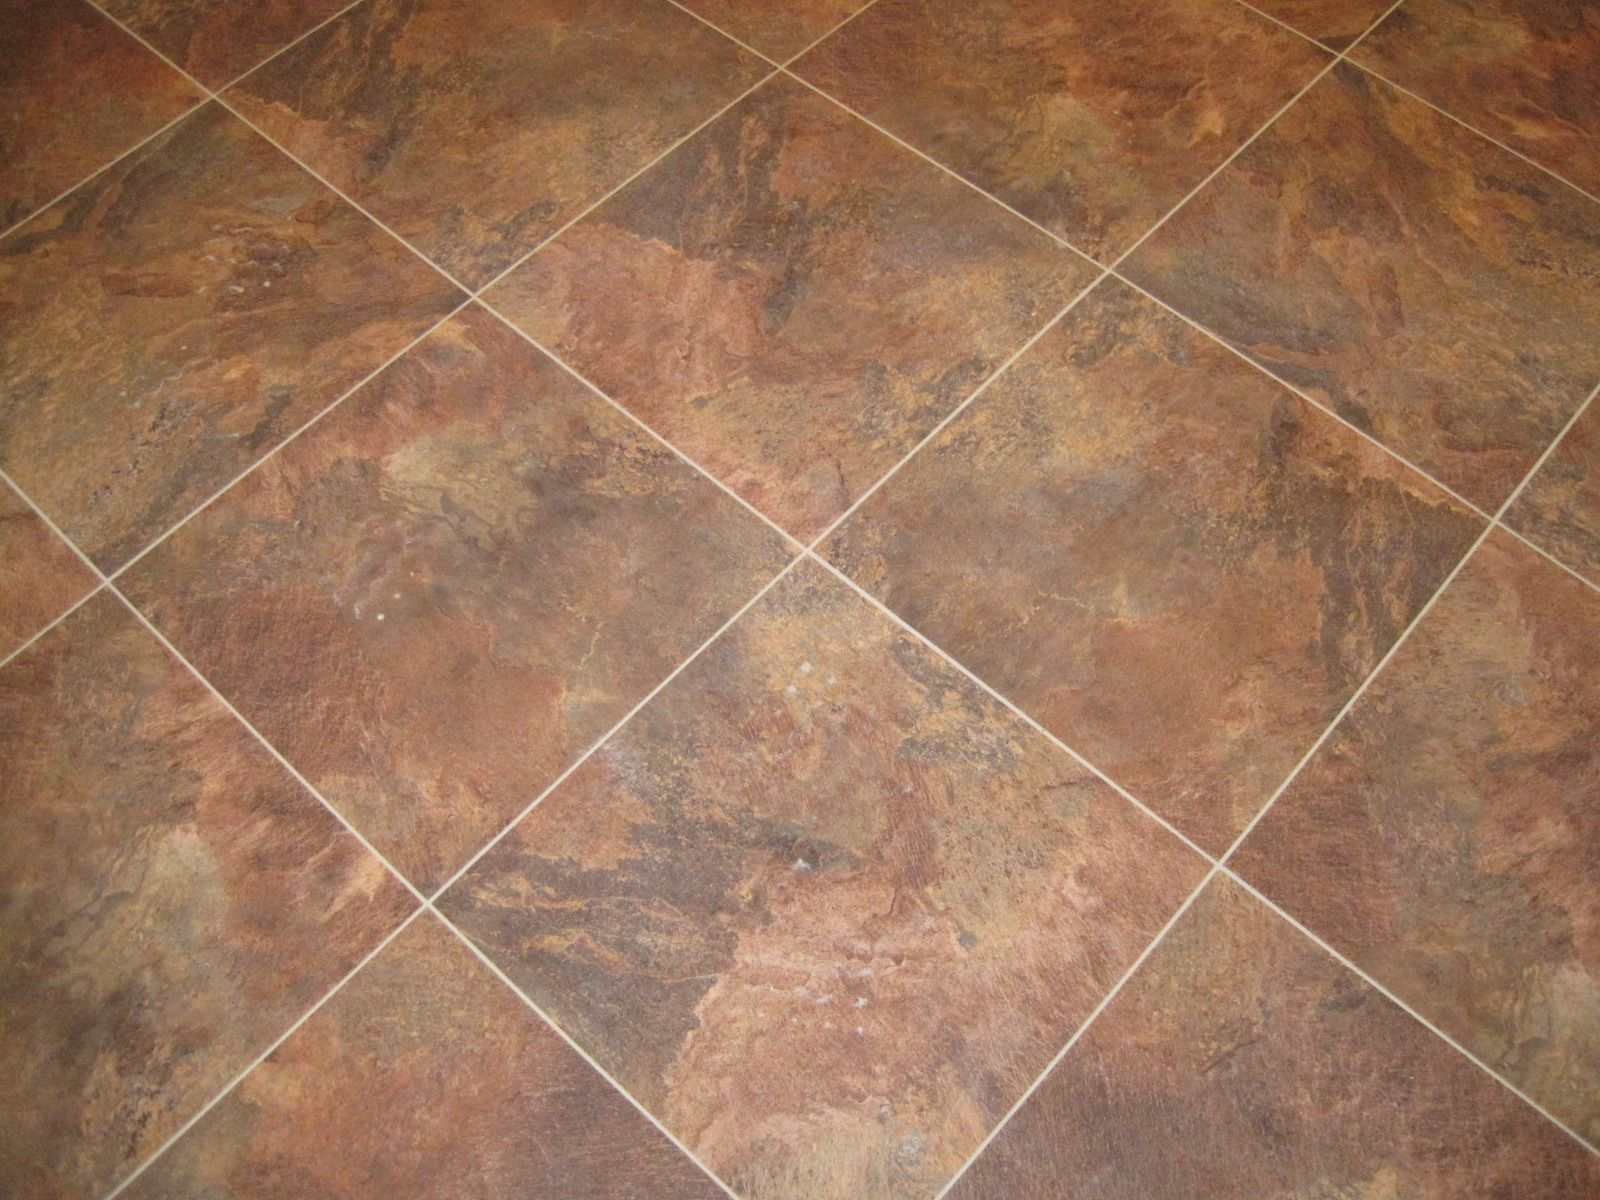 tile for floors kitchen tile floor Tiles Cheap Tile Flooring Backsplash